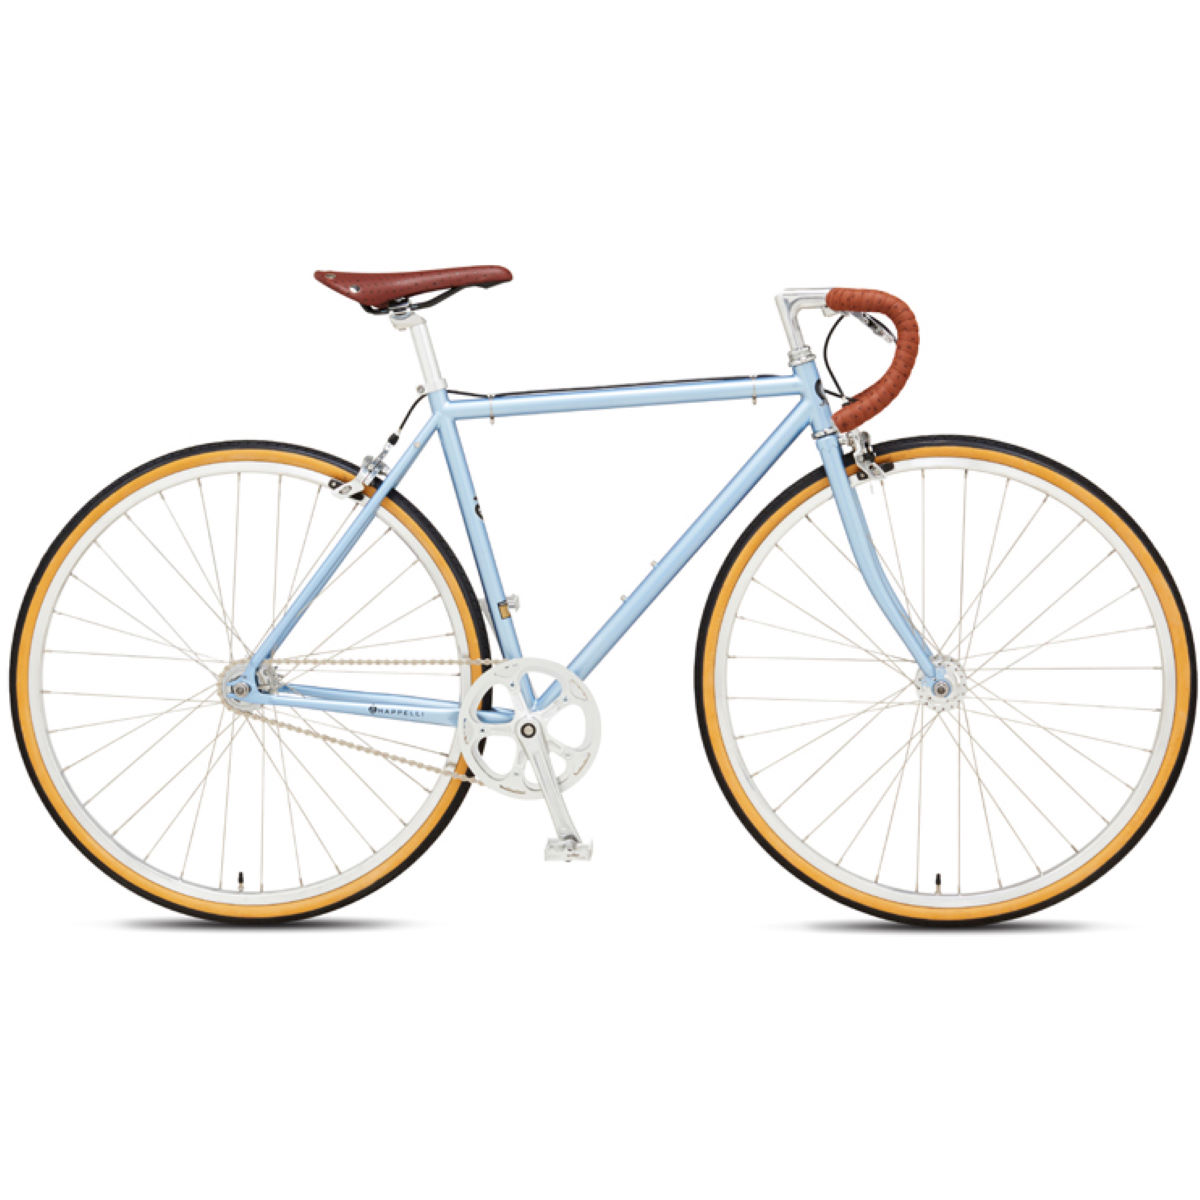 Image of Chappelli Vintage Single Speed Bike (2017) Single Speeds